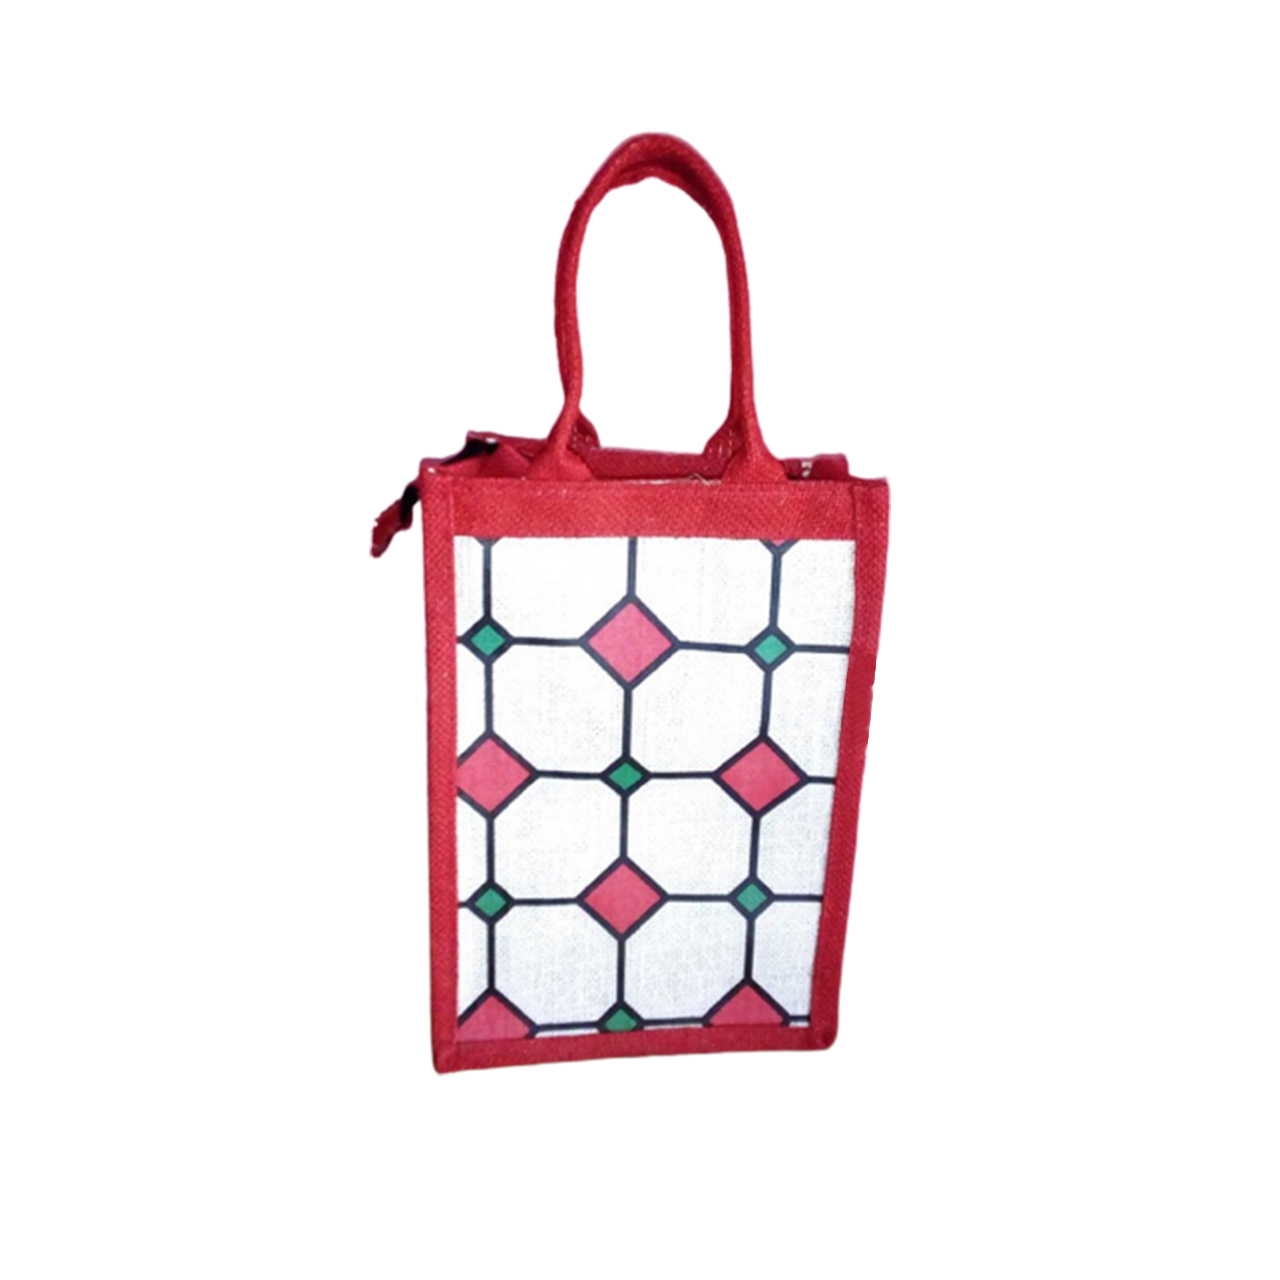 Jute bag for Lunch box with sticker laminated